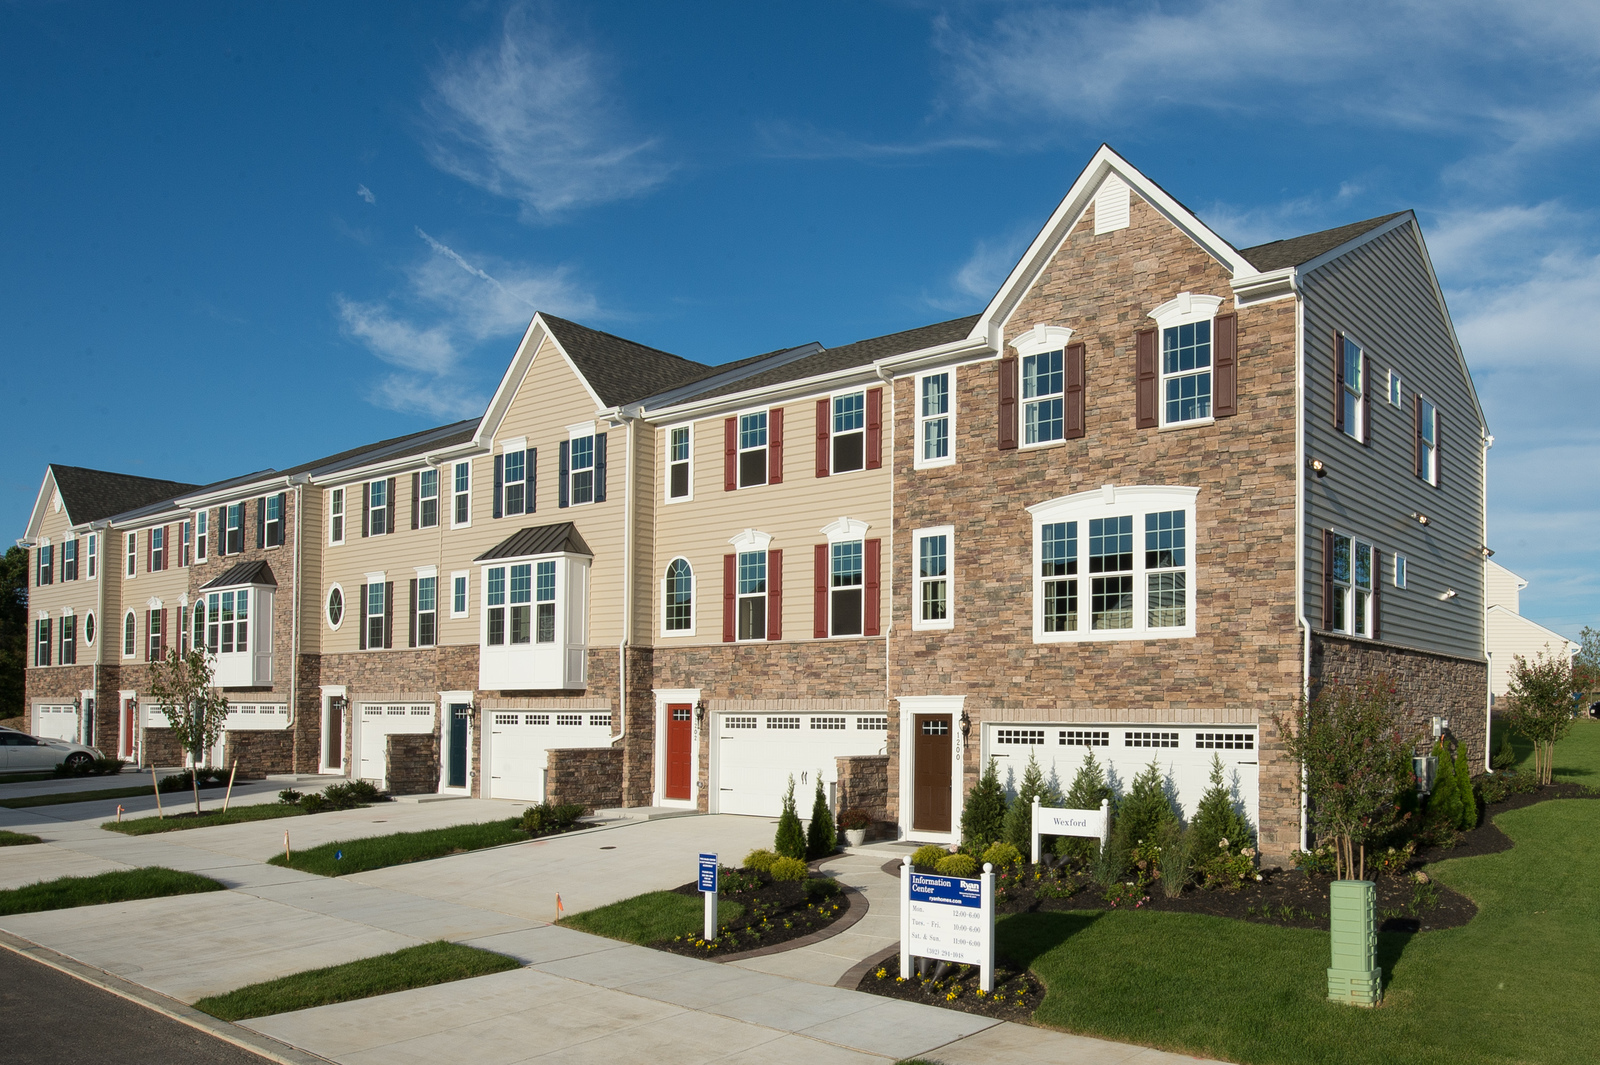 New Homes For Sale At High Hook Farms Townhomes In